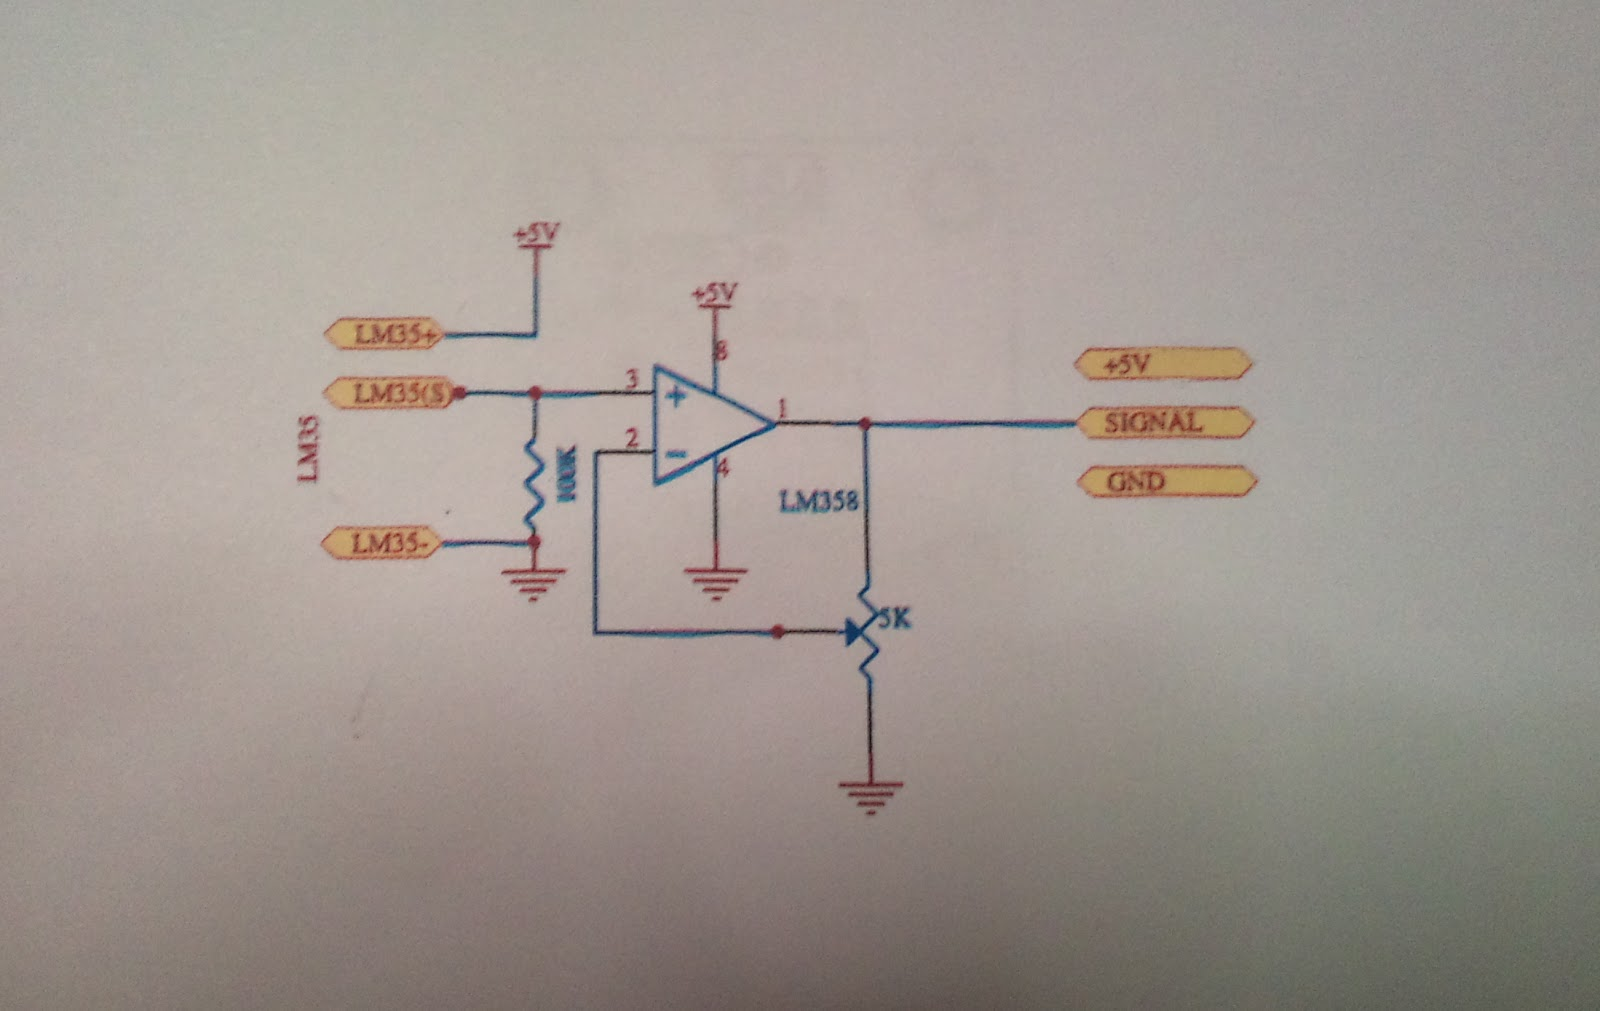 Final Year Project Home Patient Monitor Fyp Week 5 Lm35 Circuit Figure 3 Schematic Diagram For The Temperature Sensor By Using